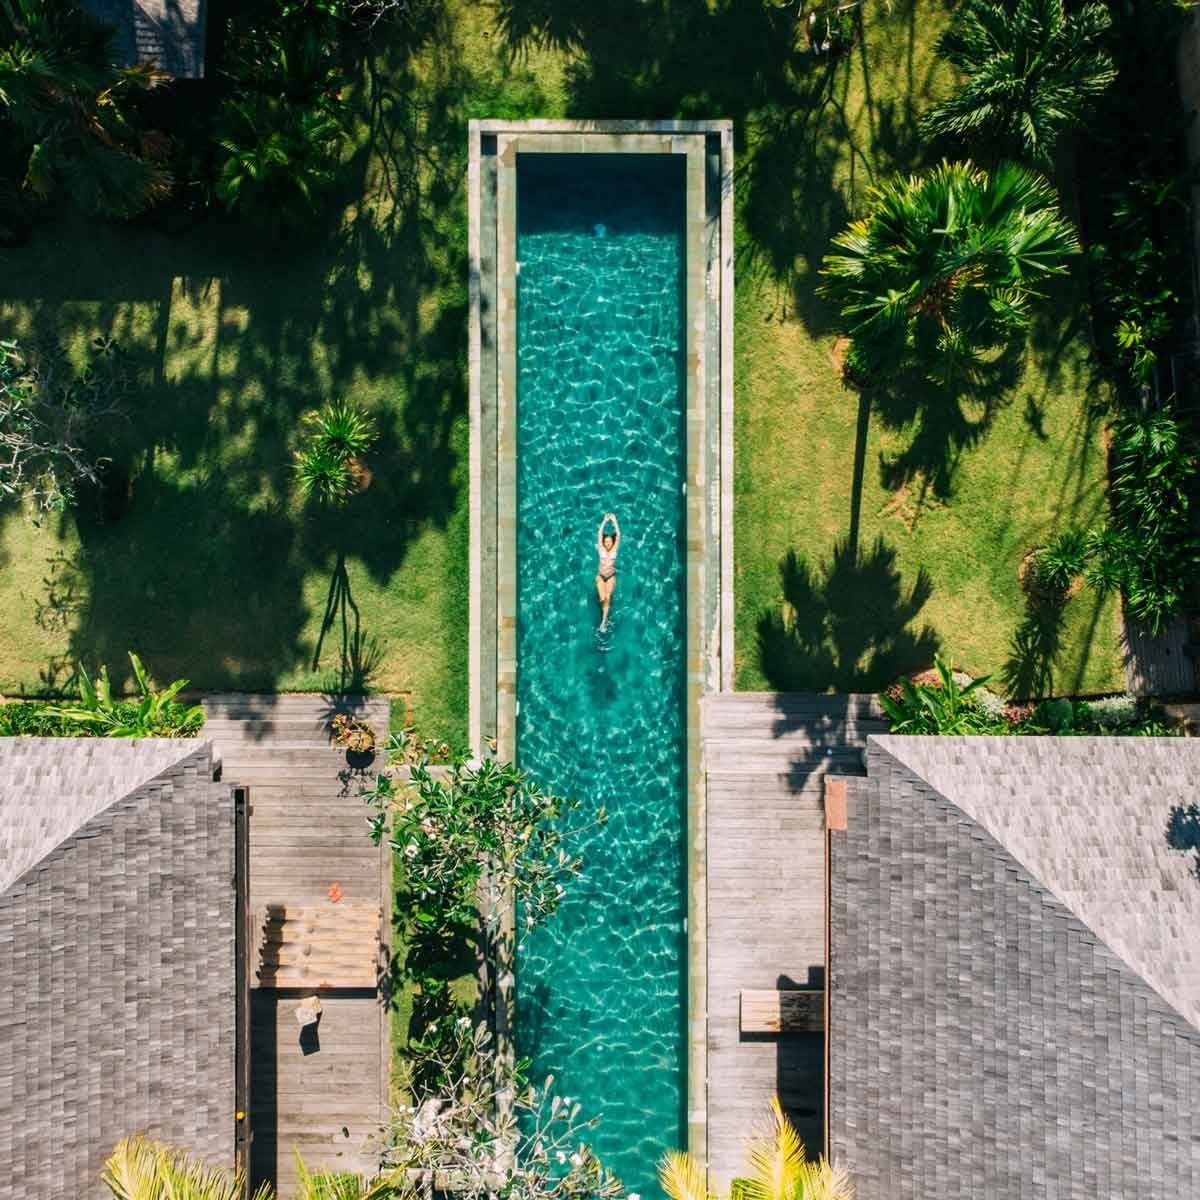 Thinking of Getting a Pool? Here's What To Know